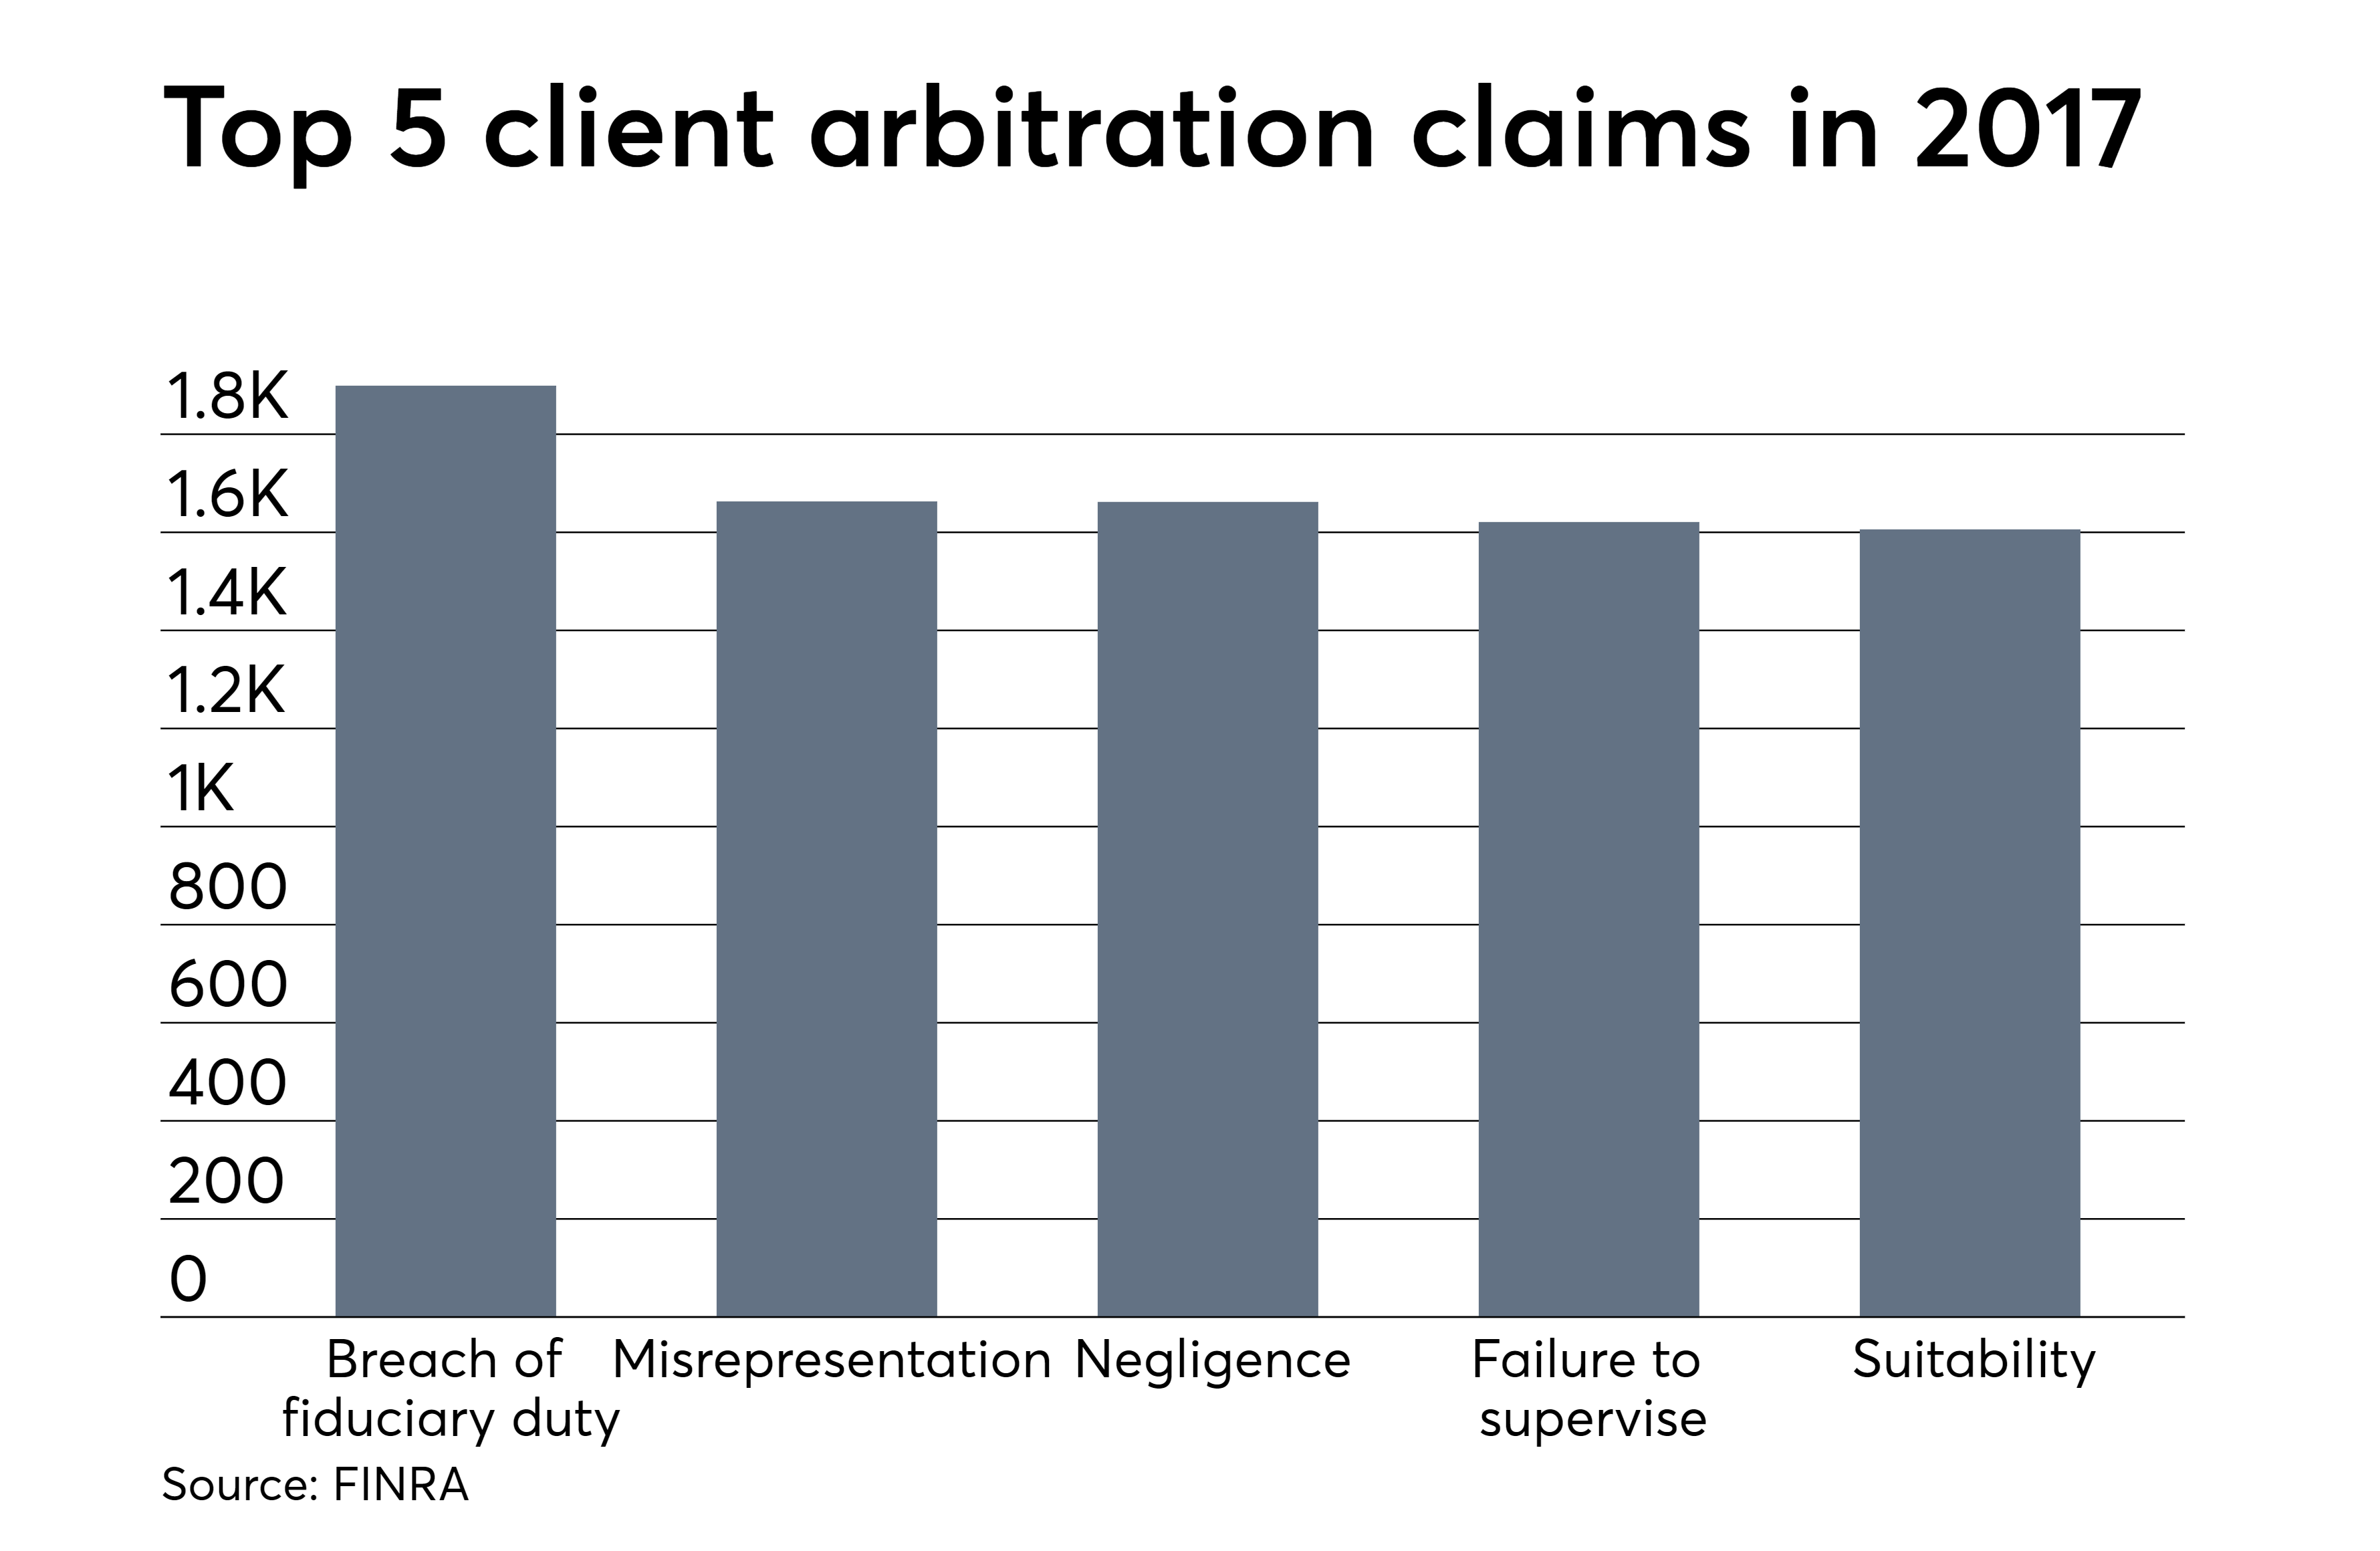 ows 02 20 2018 top 5 client arbitration claims in 2017